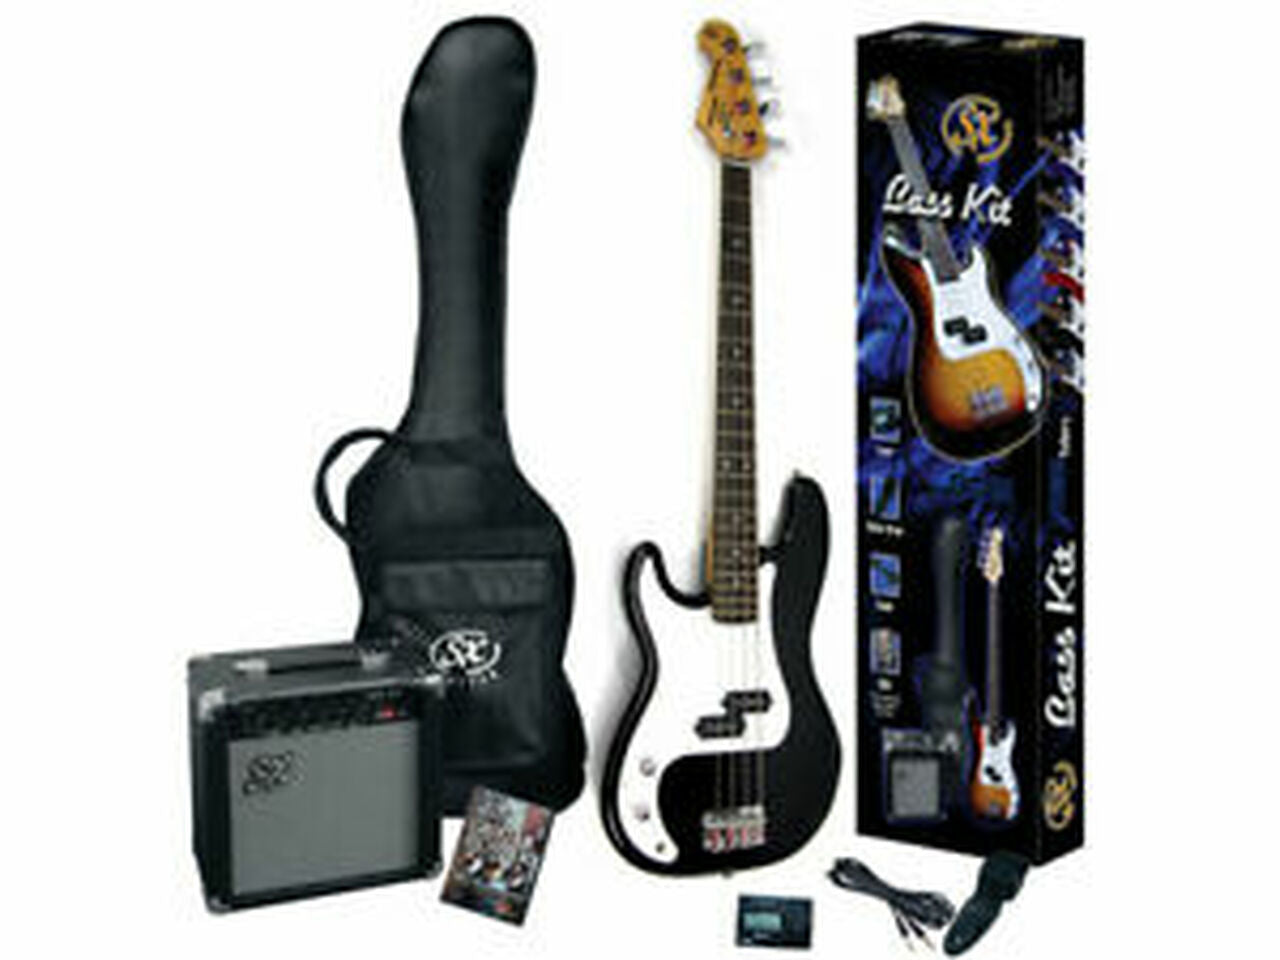 ESSEX LEFT-HANDED PB STYLE BASS GUITAR PACK - BLACK